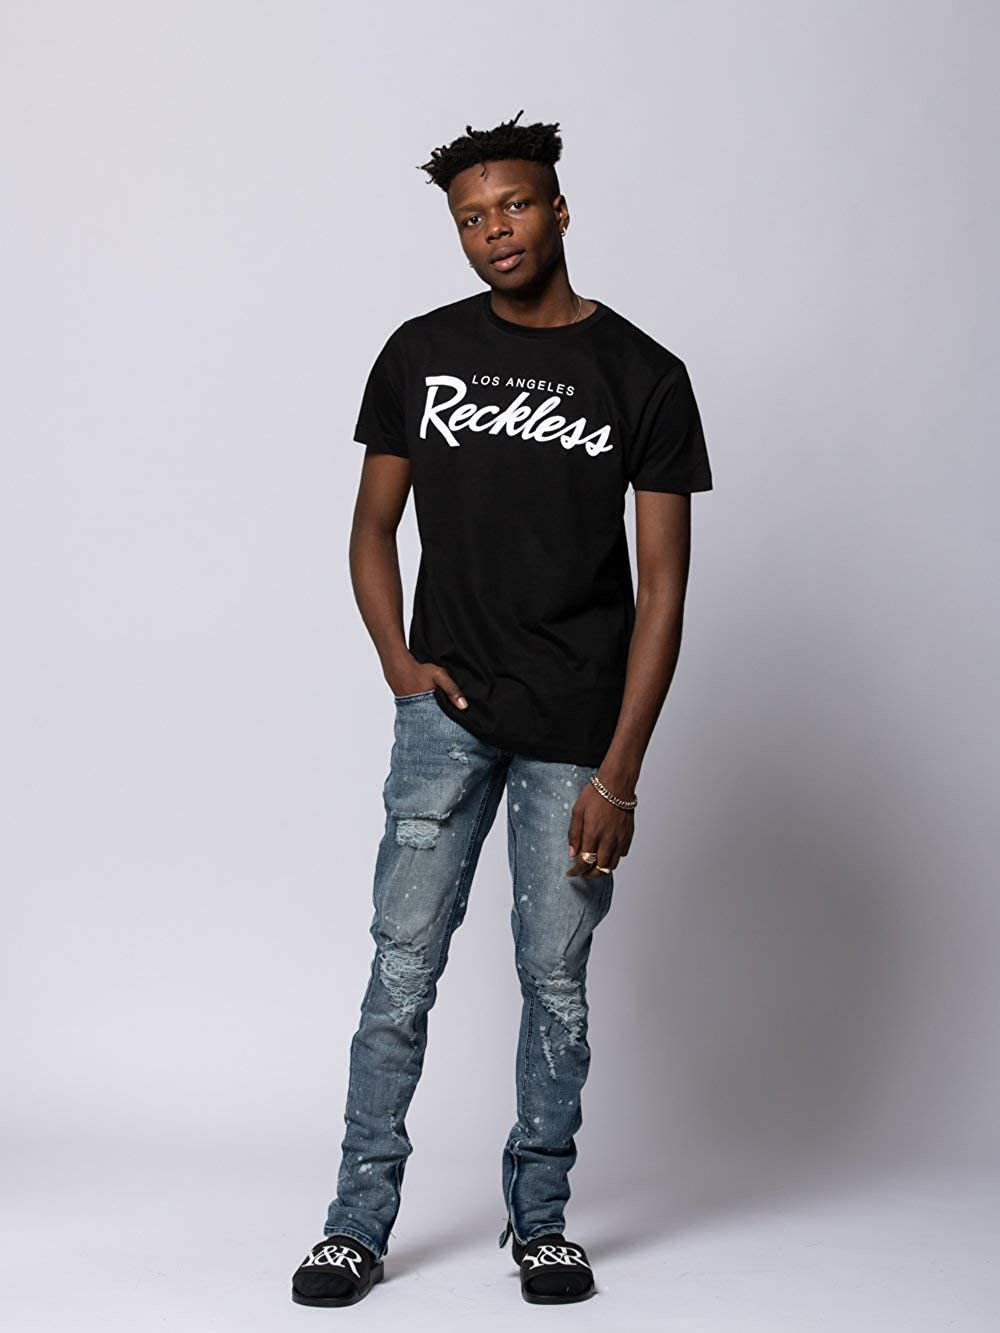 finest selection 4bb3a 9f86c Amazon.com  Young and Reckless - OG Reckless Tee - Black White - - Mens -  Tops - Graphic Tee -  Clothing